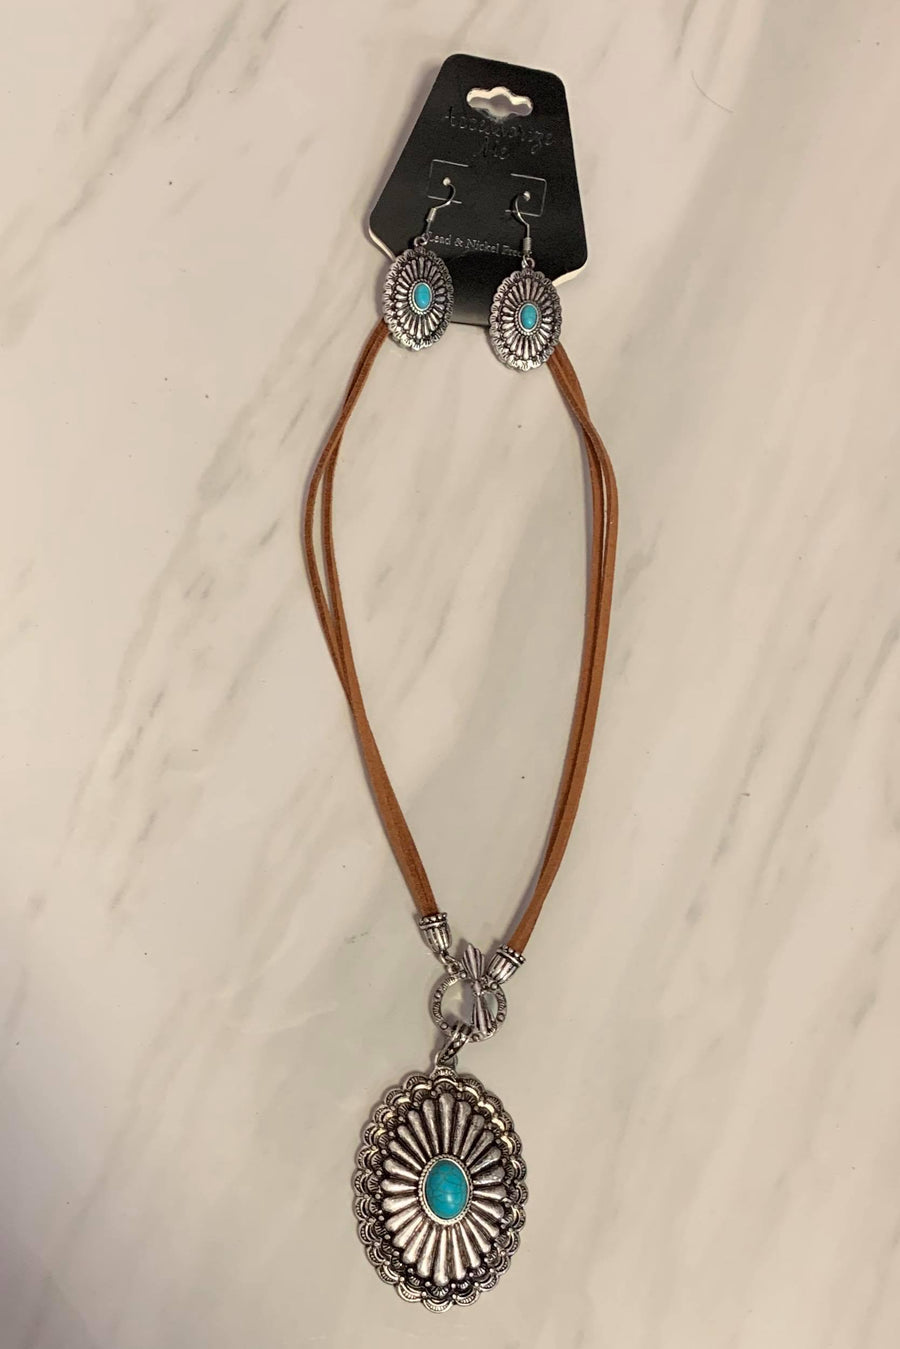 Western Turquoise Pendant Necklace